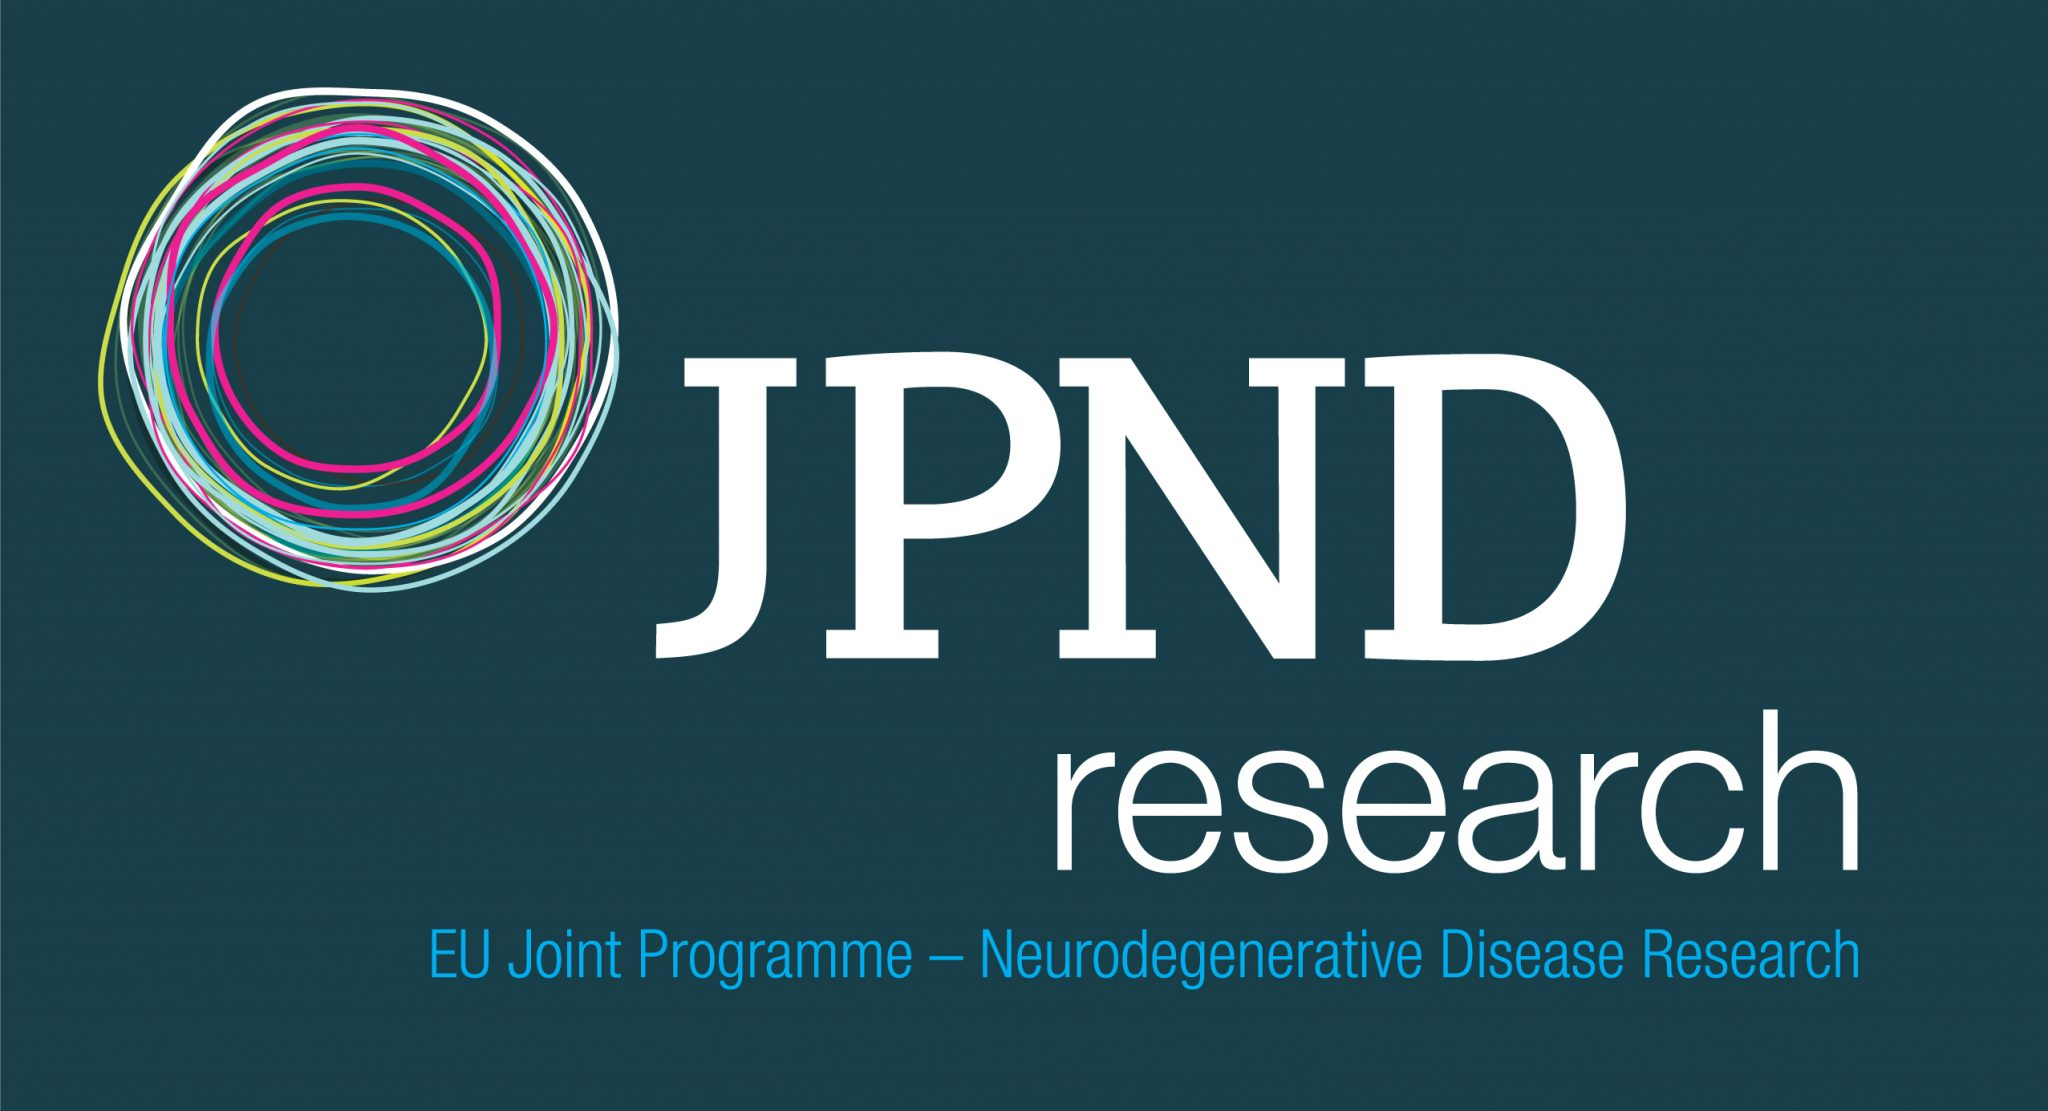 JPND Cresearch856kb